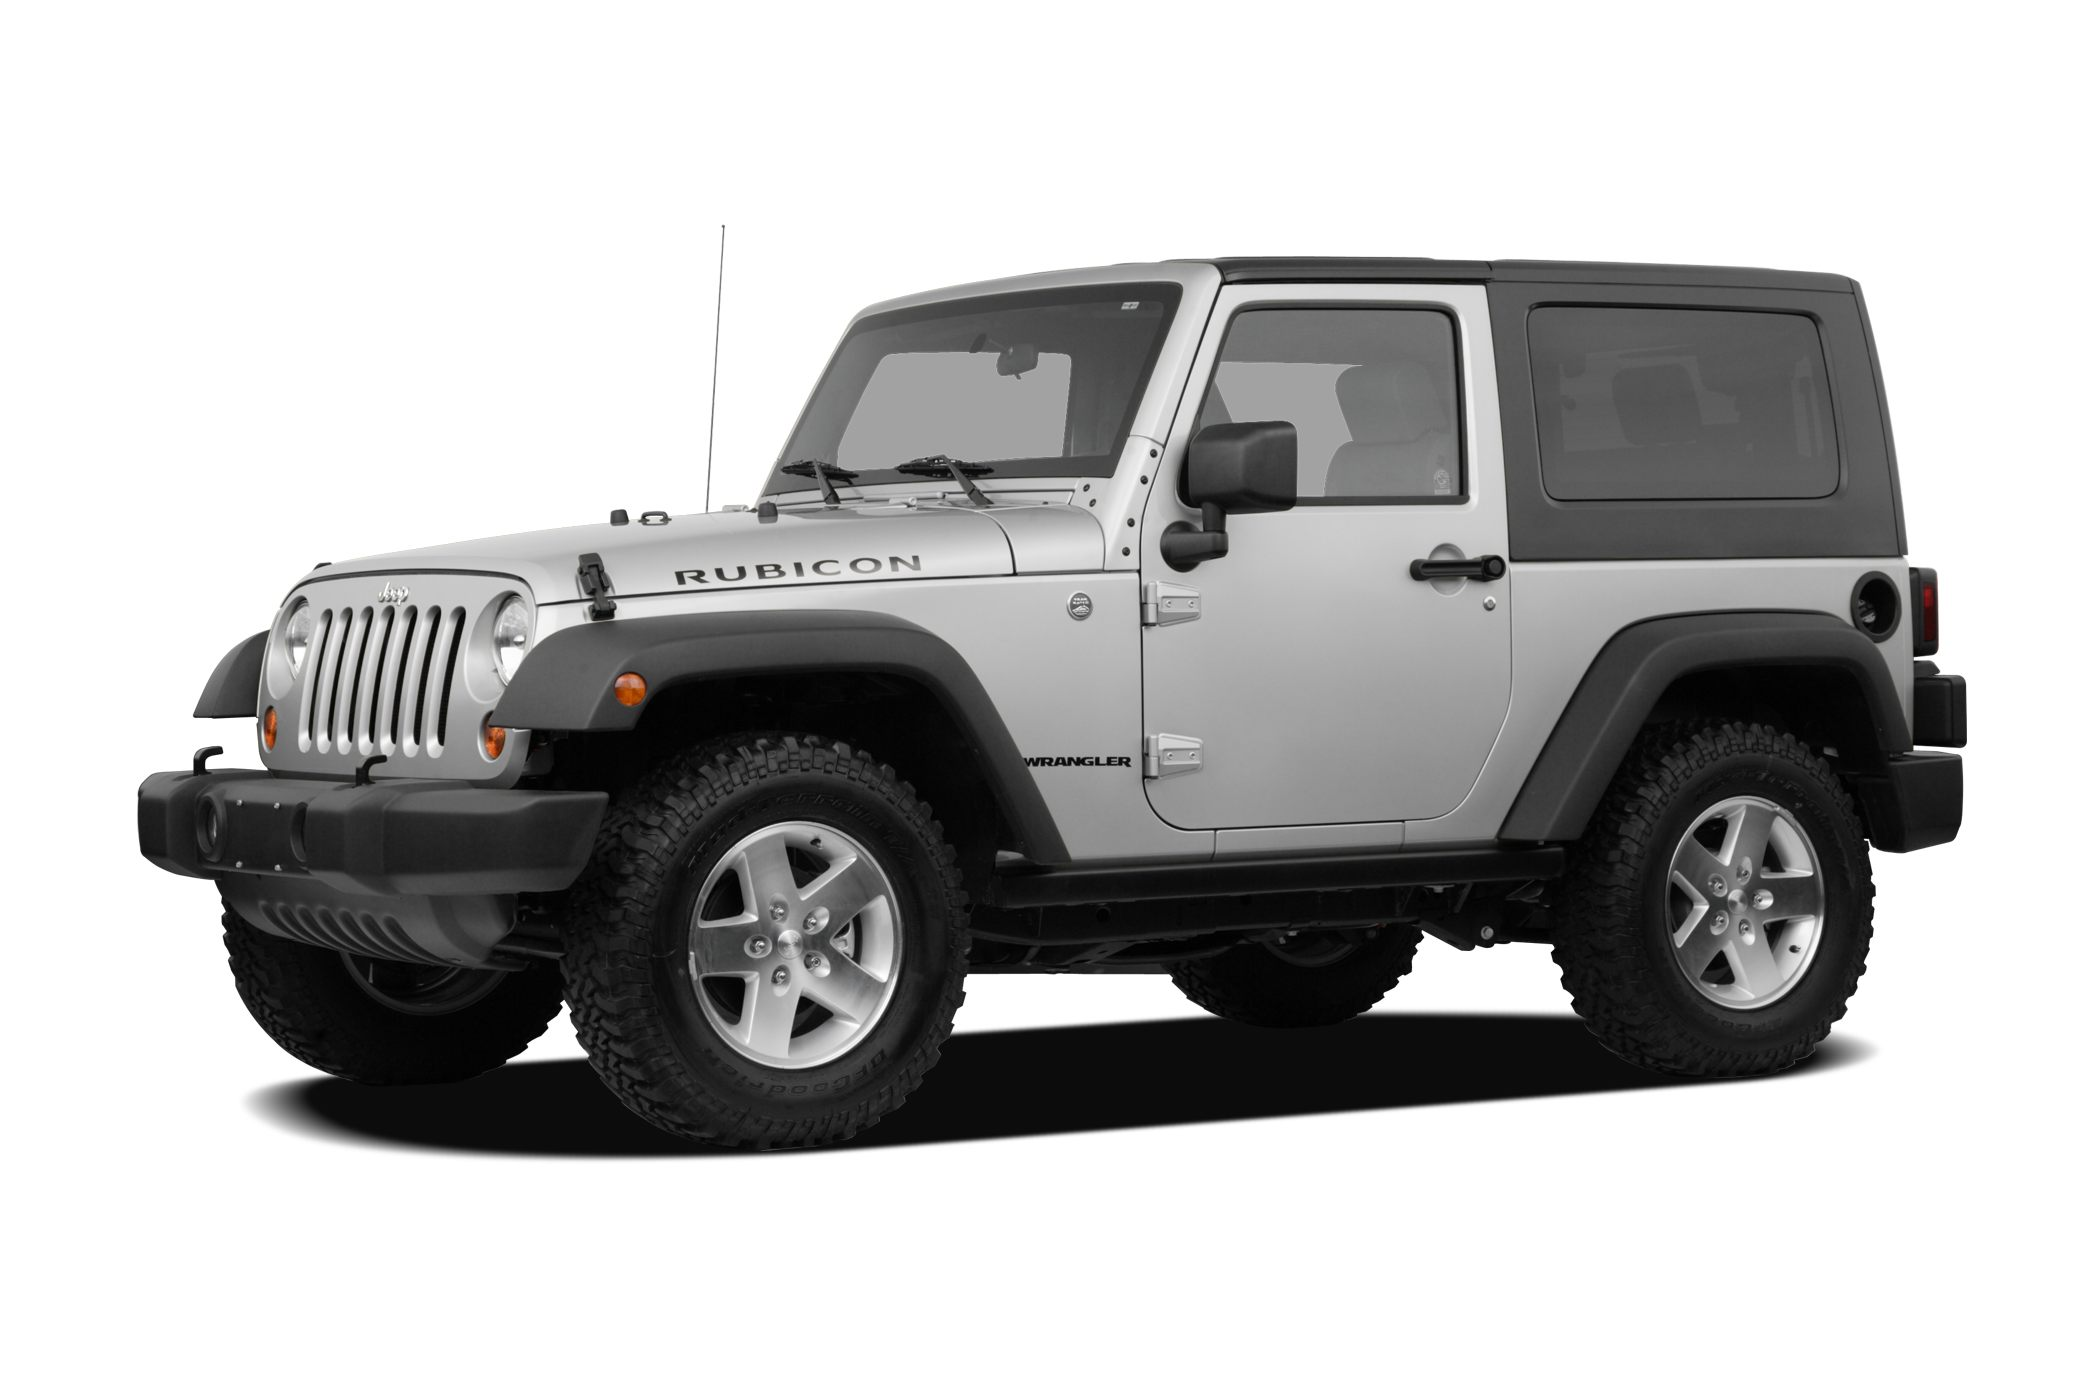 2007 Jeep Wrangler X This 2007 Jeep Wrangler 4WD 2dr X is offered to you for sale by Lake Keowee C